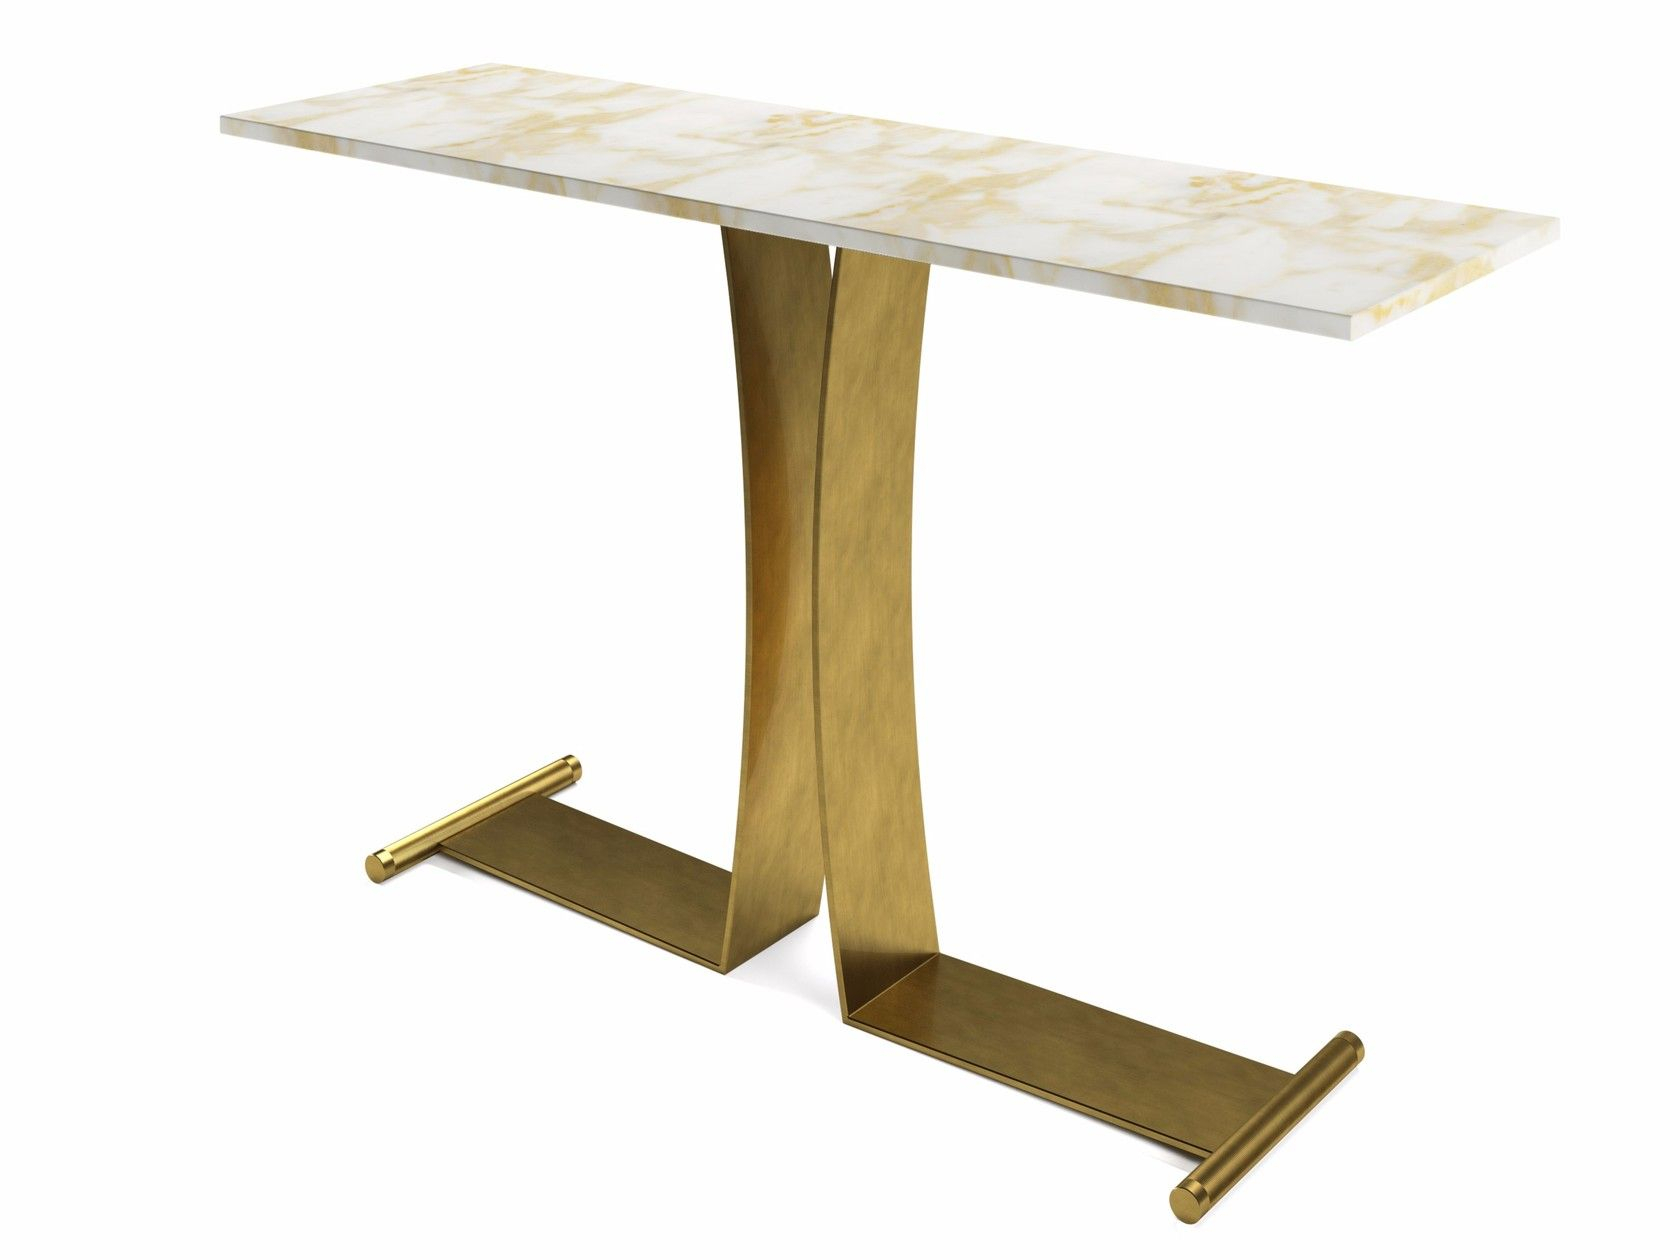 Guy | Console Table In 2018 | 1gja Console Tables | Pinterest Inside Parsons White Marble Top & Dark Steel Base 48x16 Console Tables (View 7 of 30)